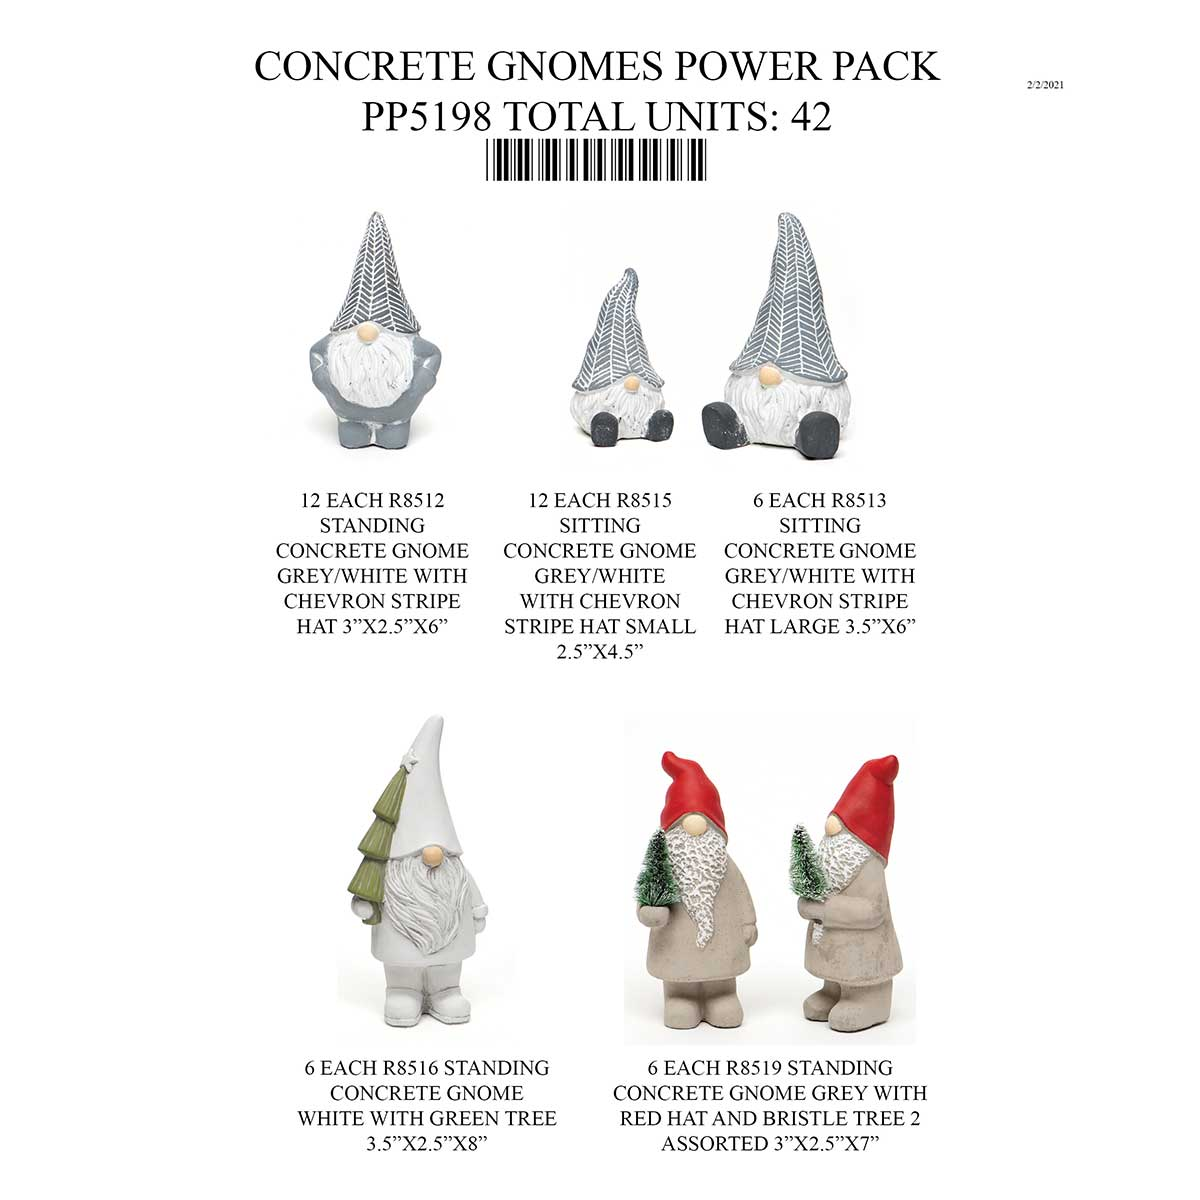 CONCRETE GNOME POWER PACK 42 UNITS PP5198